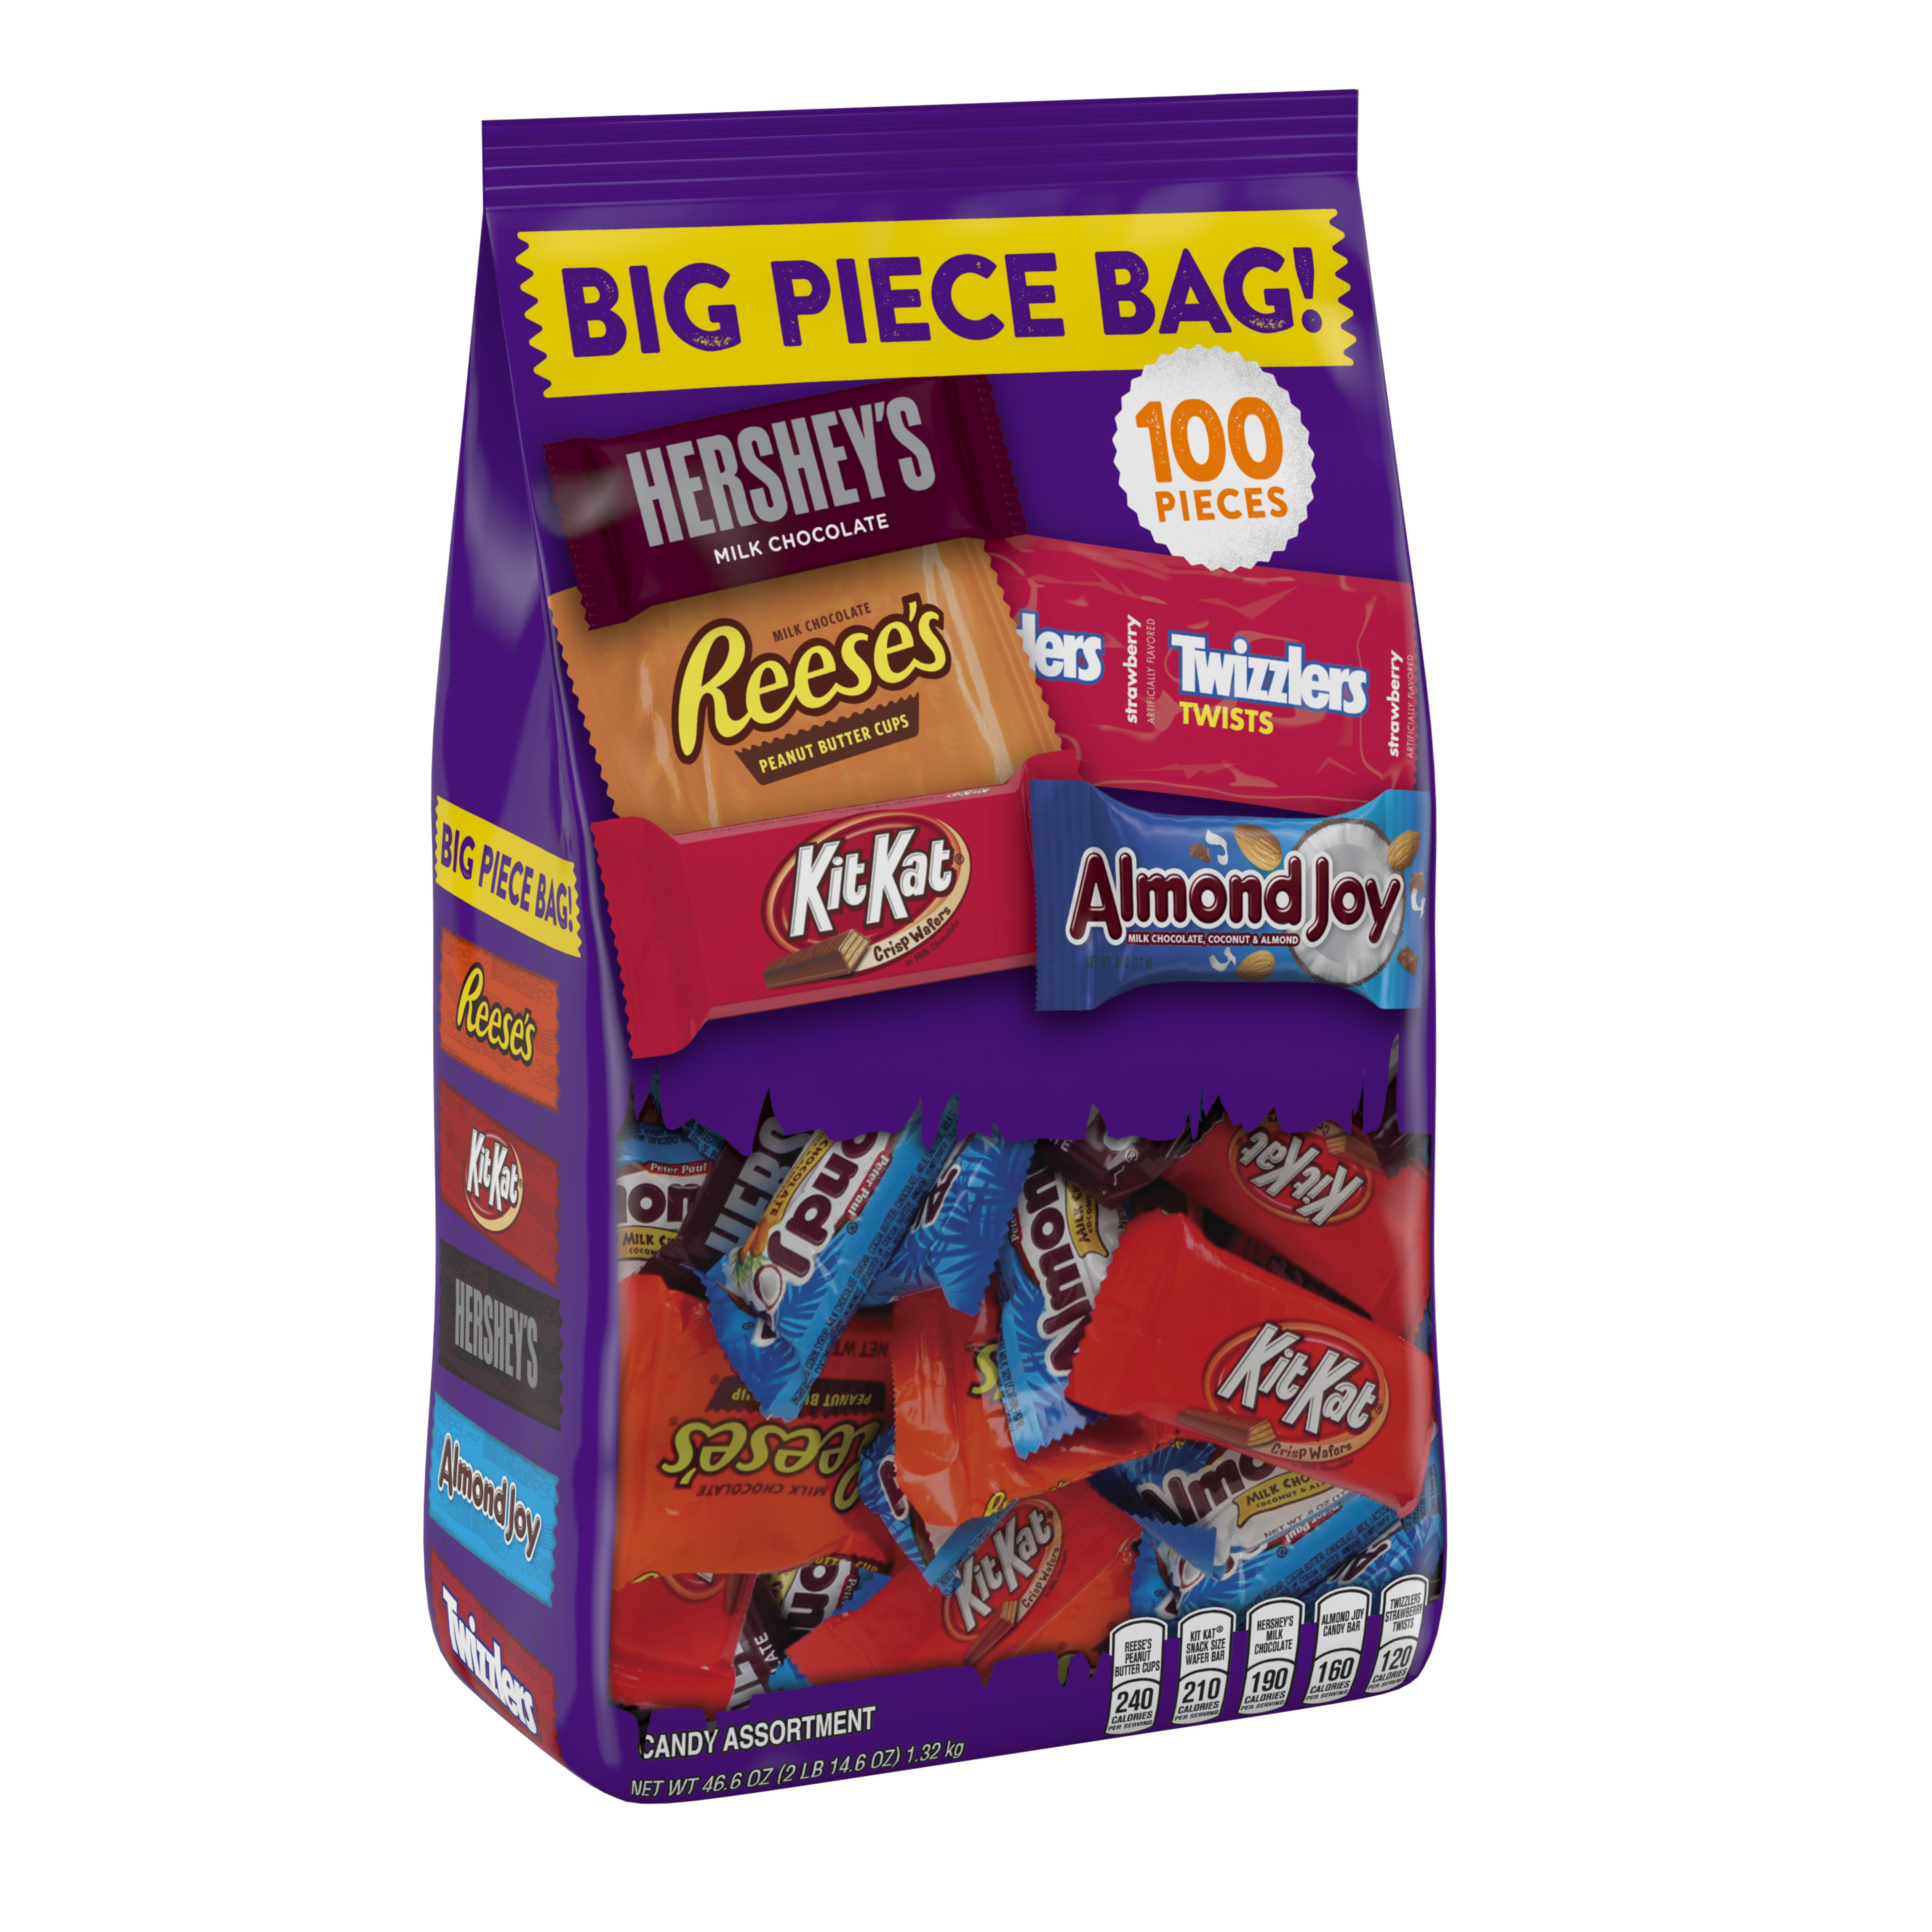 Hershey's Big Piece Bag Candy Assortment Hershey's, Reese's, Twizzlers, Kit Kat & Almond Joy, 100 ct, 46.6 oz